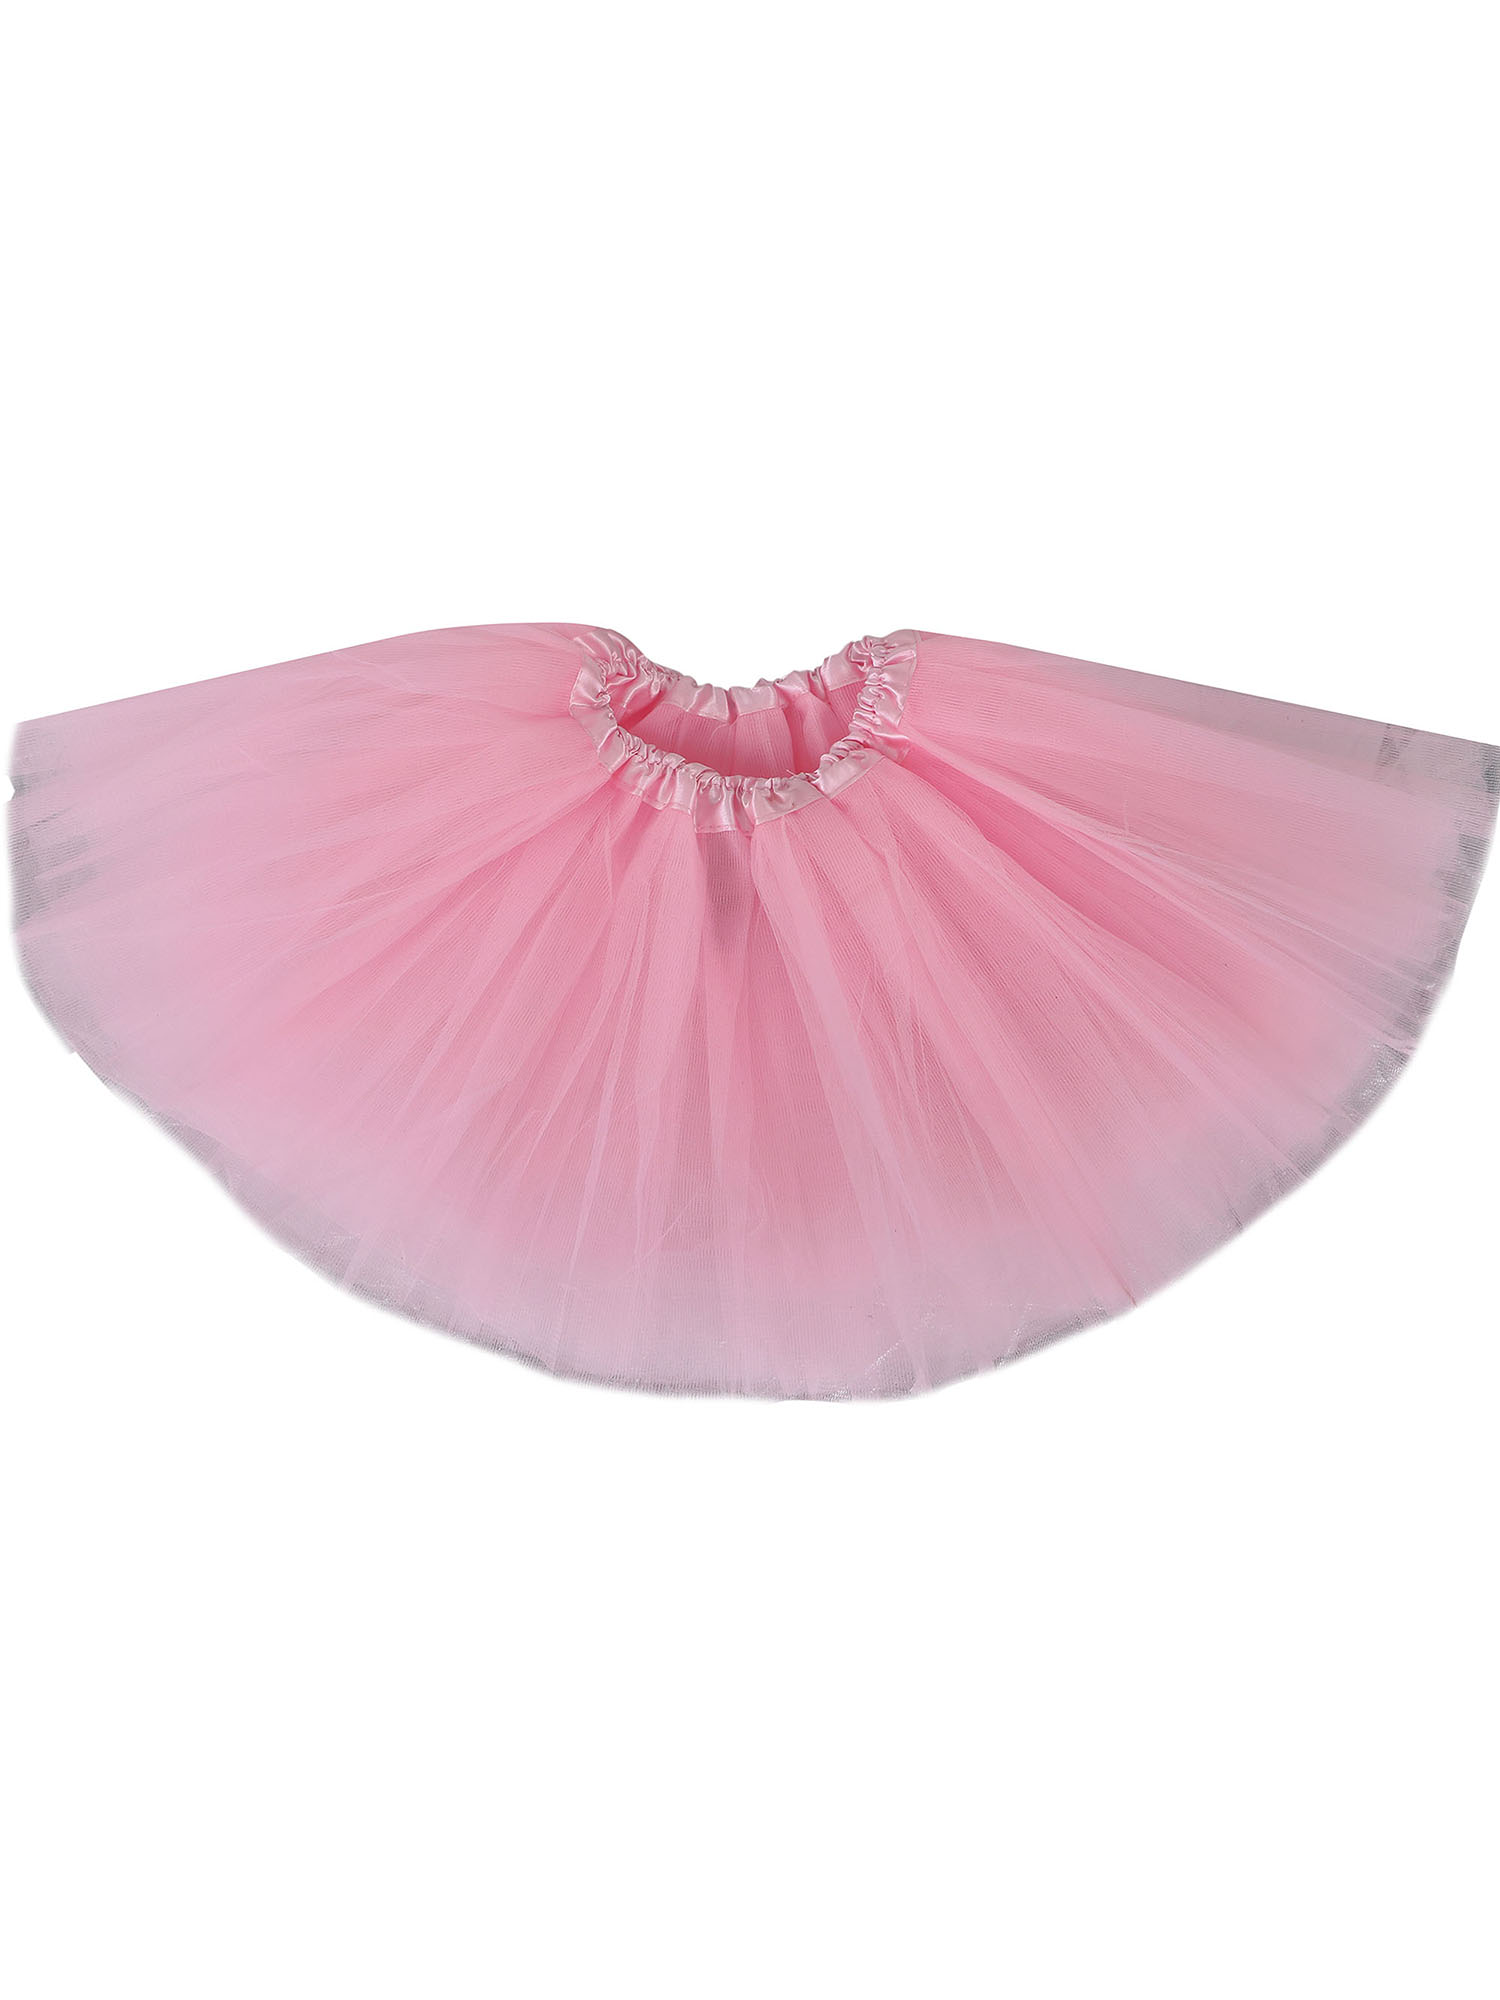 Simplicity Infant Tulle Dance Tutu Skirt for Dress Up & Fairy Costume,Lavender